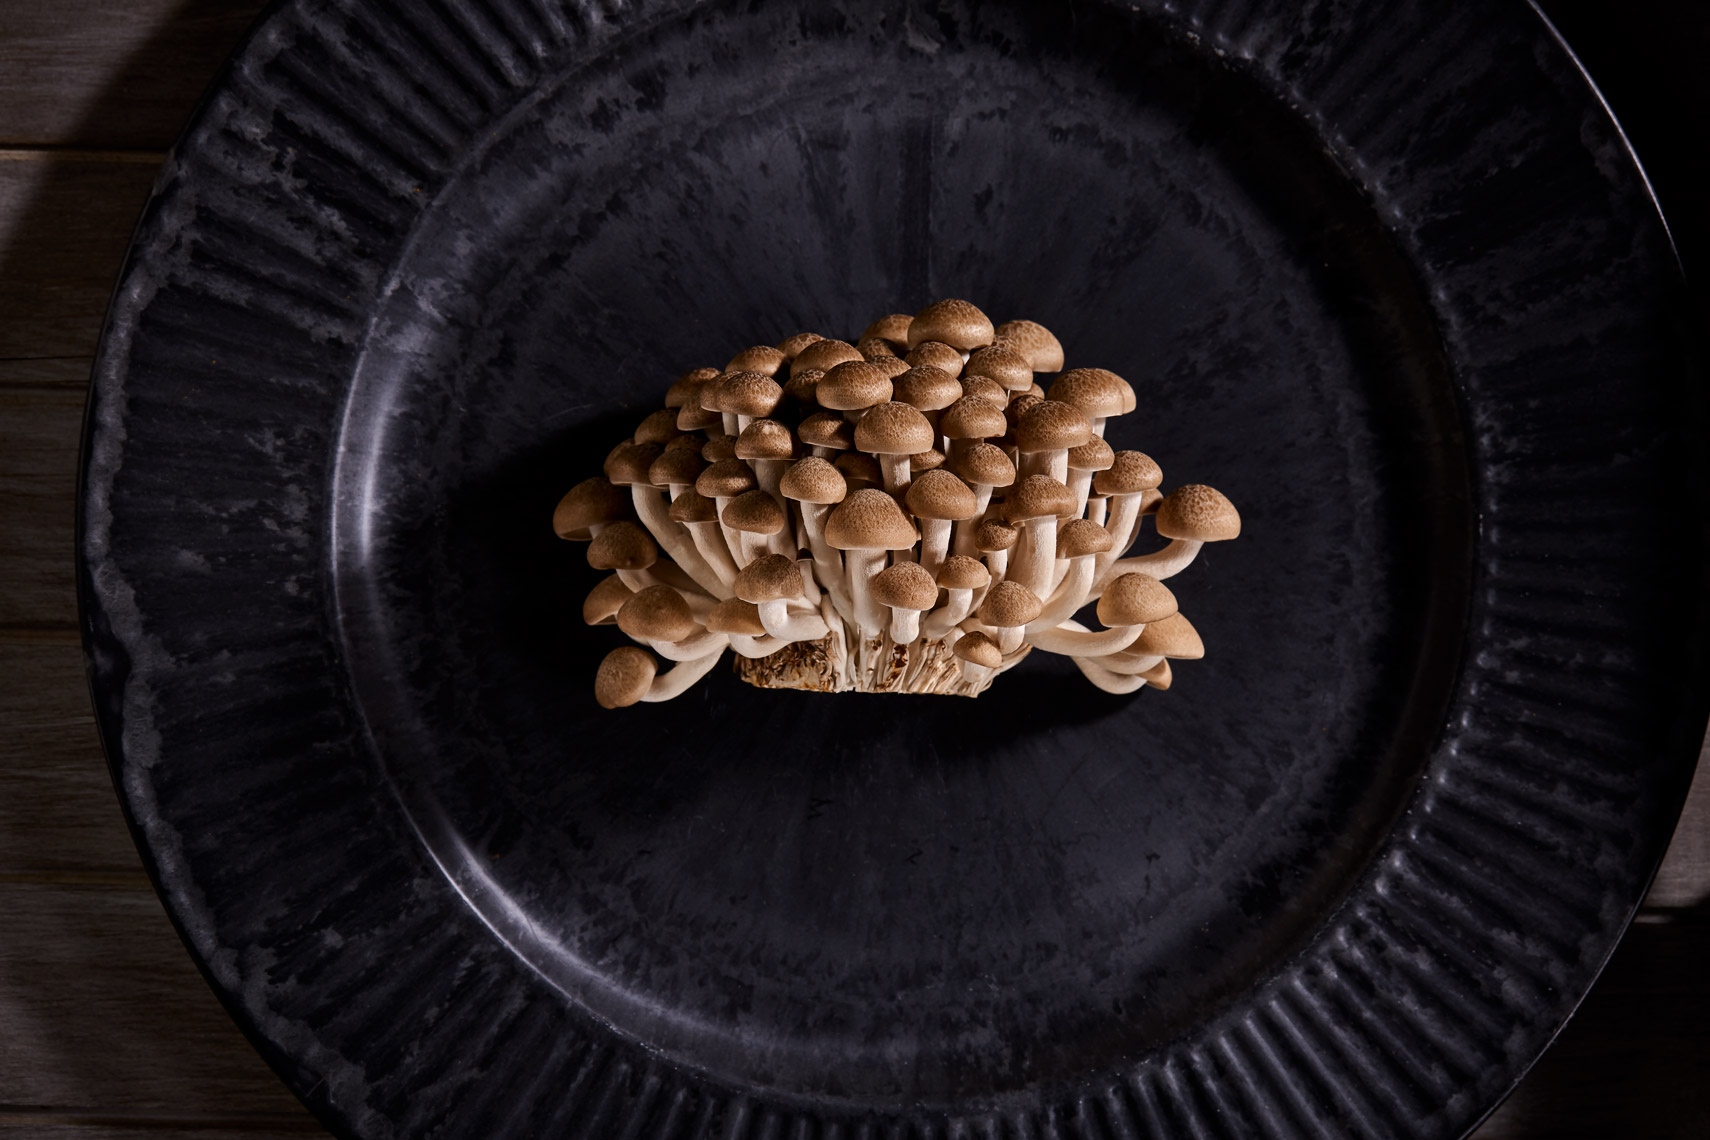 AlanCampbellPhotography, Brown Clam Shell mushrooms still life